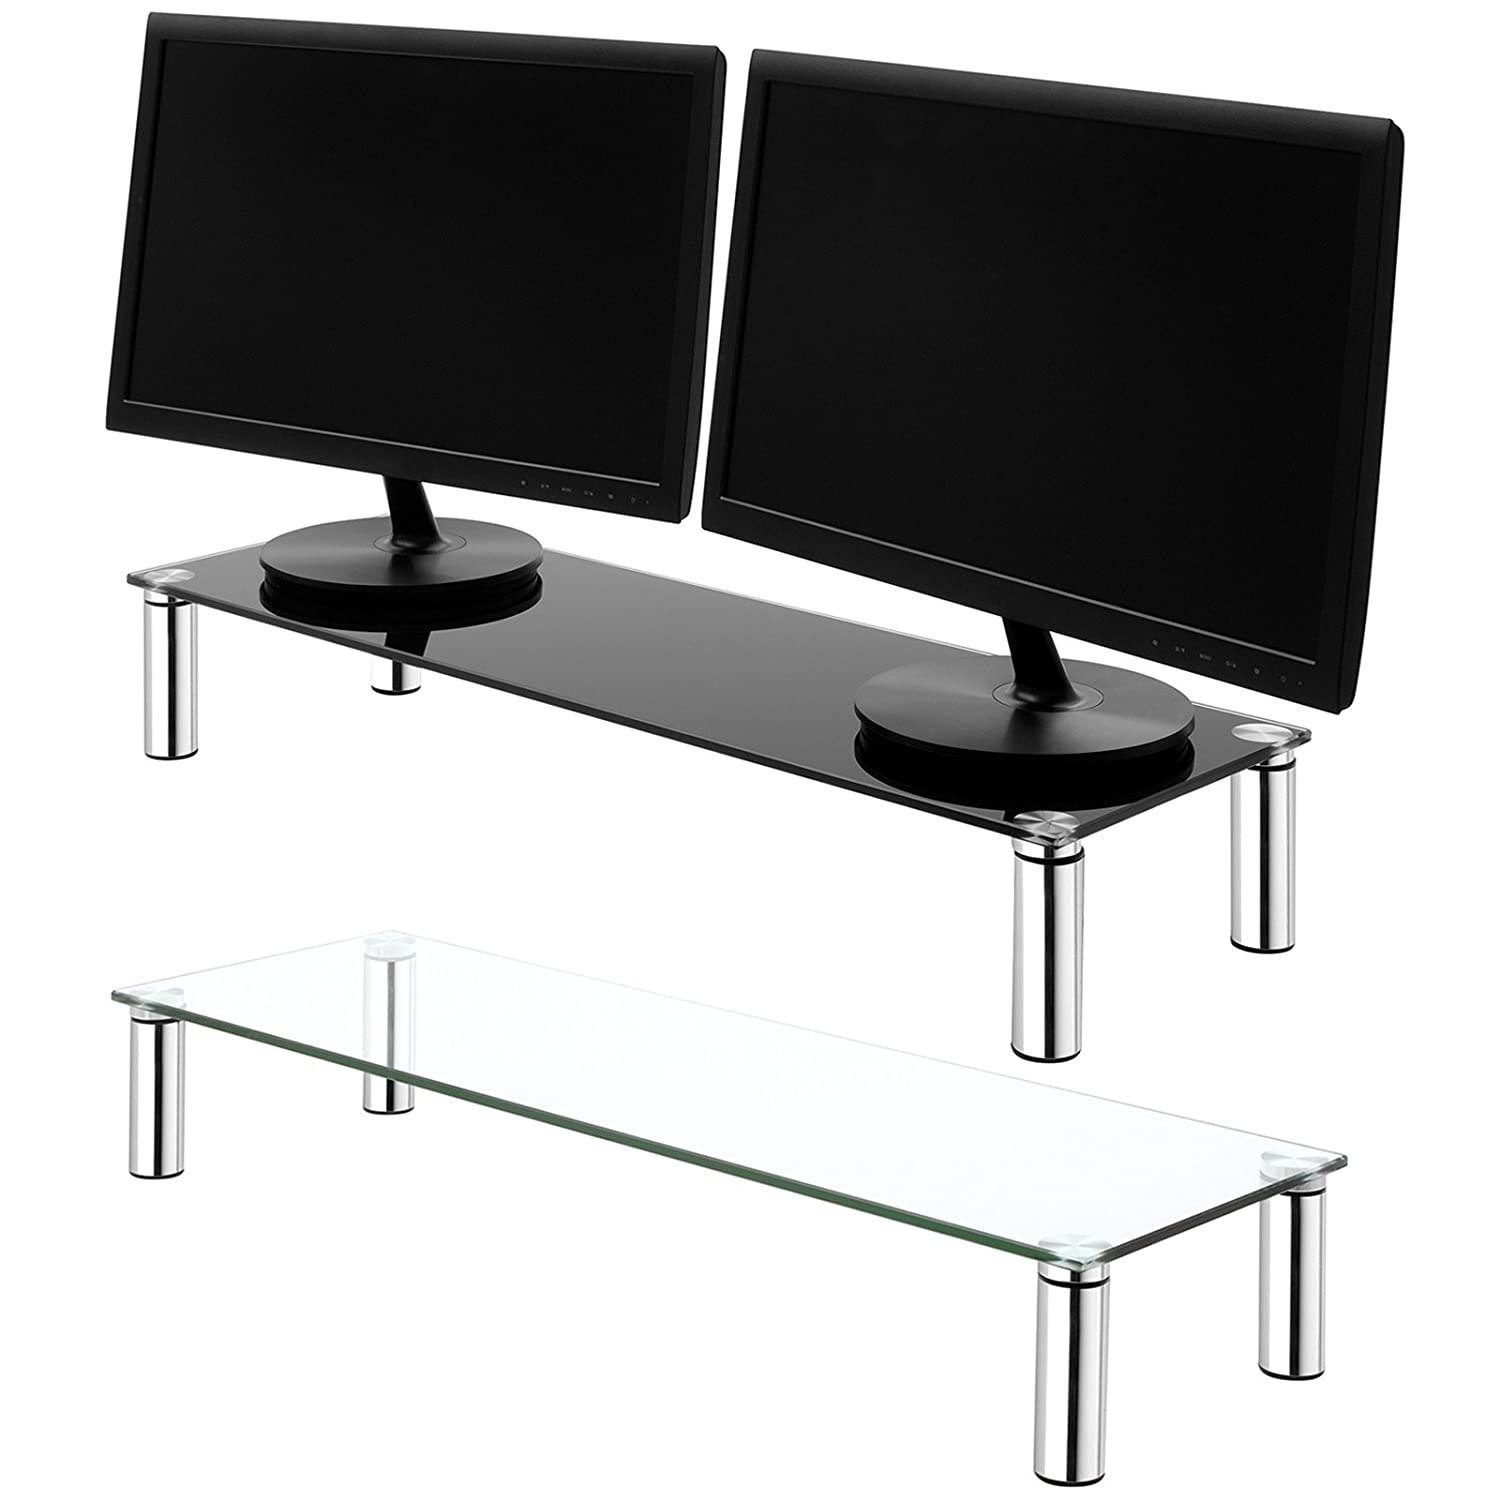 Hartleys X-Large 100cm Glass Monitor Riser Stand with Chrome Legs - Choice of Height & Colour